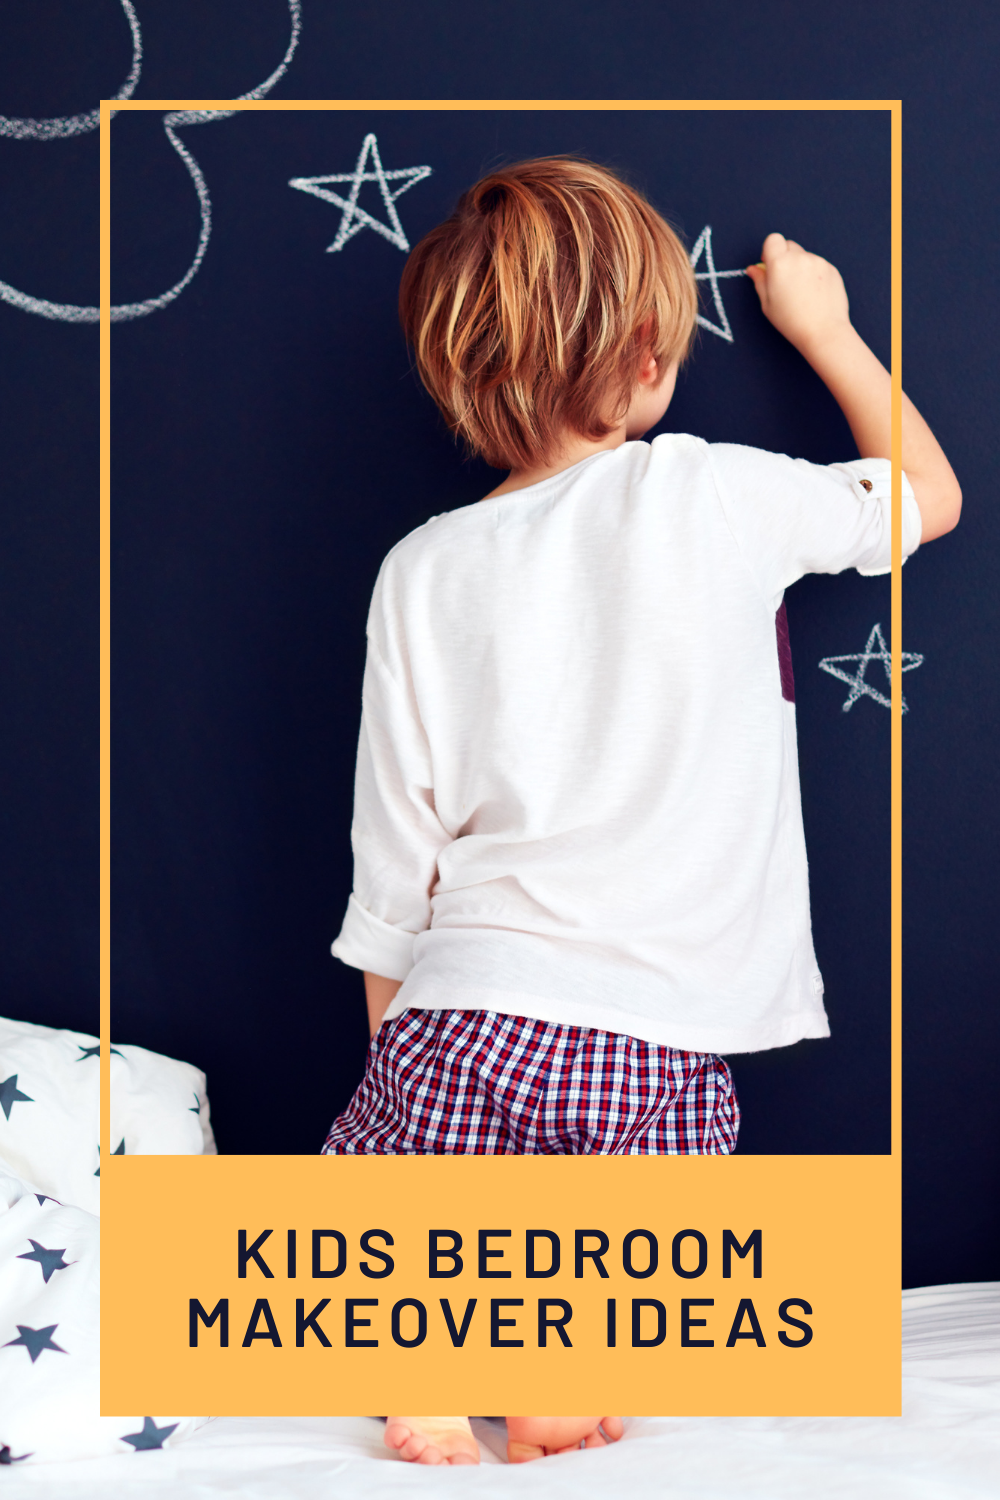 If you're giving a kids bedroom a makeover, you'll want some ideas and a plan. I'm here to help!